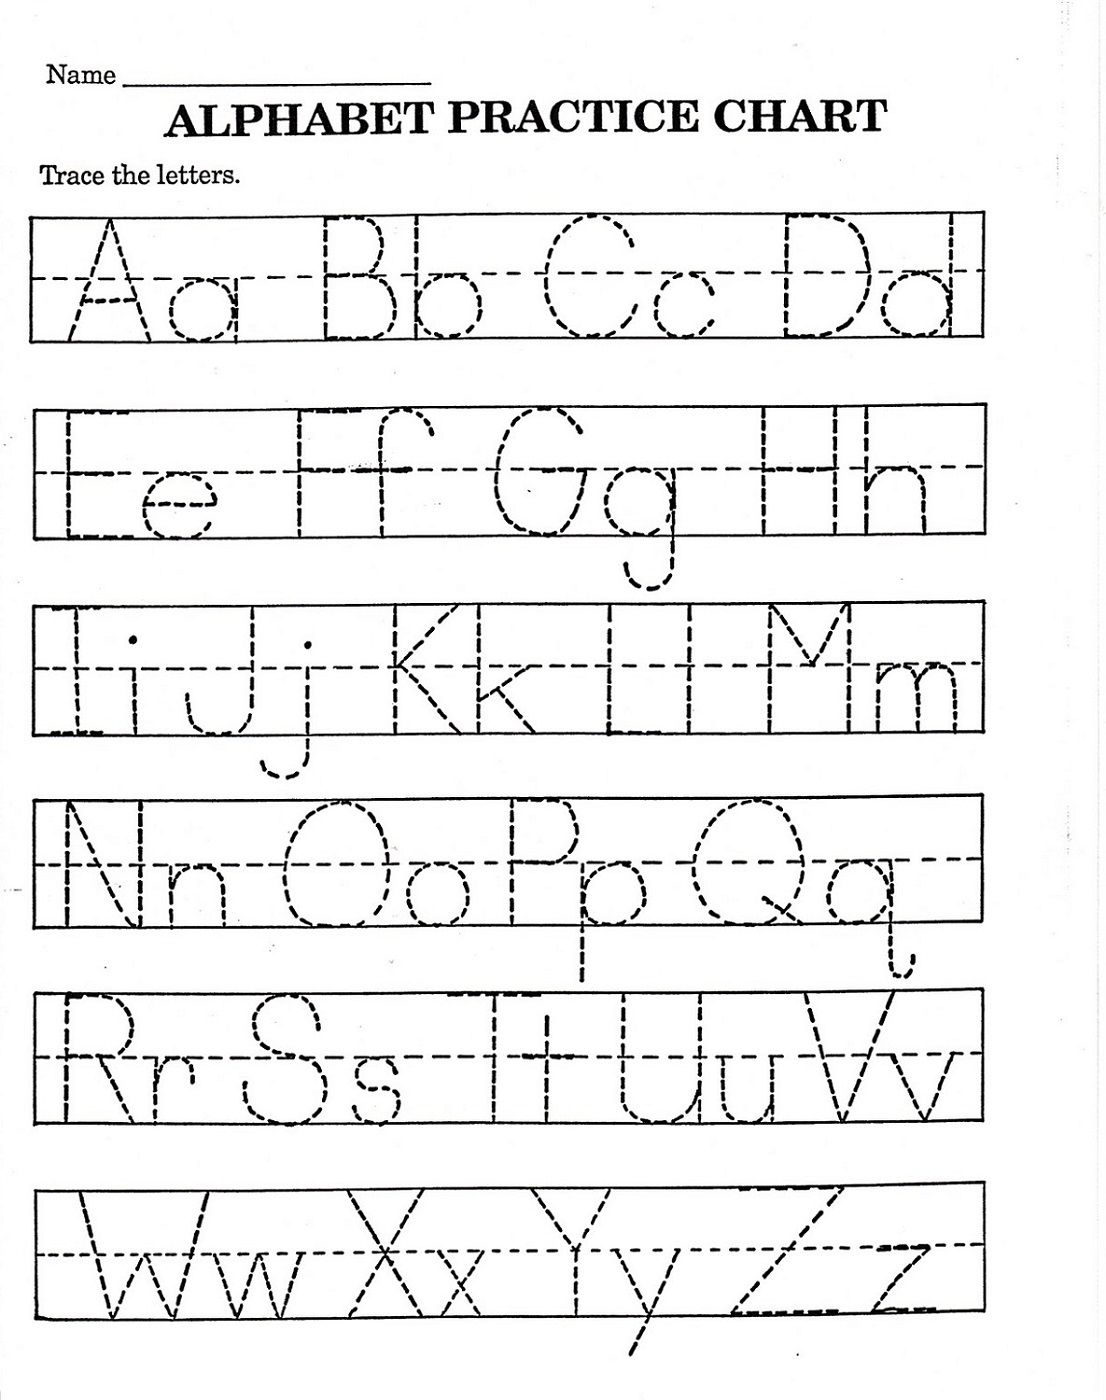 Trace Letter Worksheets Free | Alphabet Tracing Worksheets within Tracing Letters Worksheets